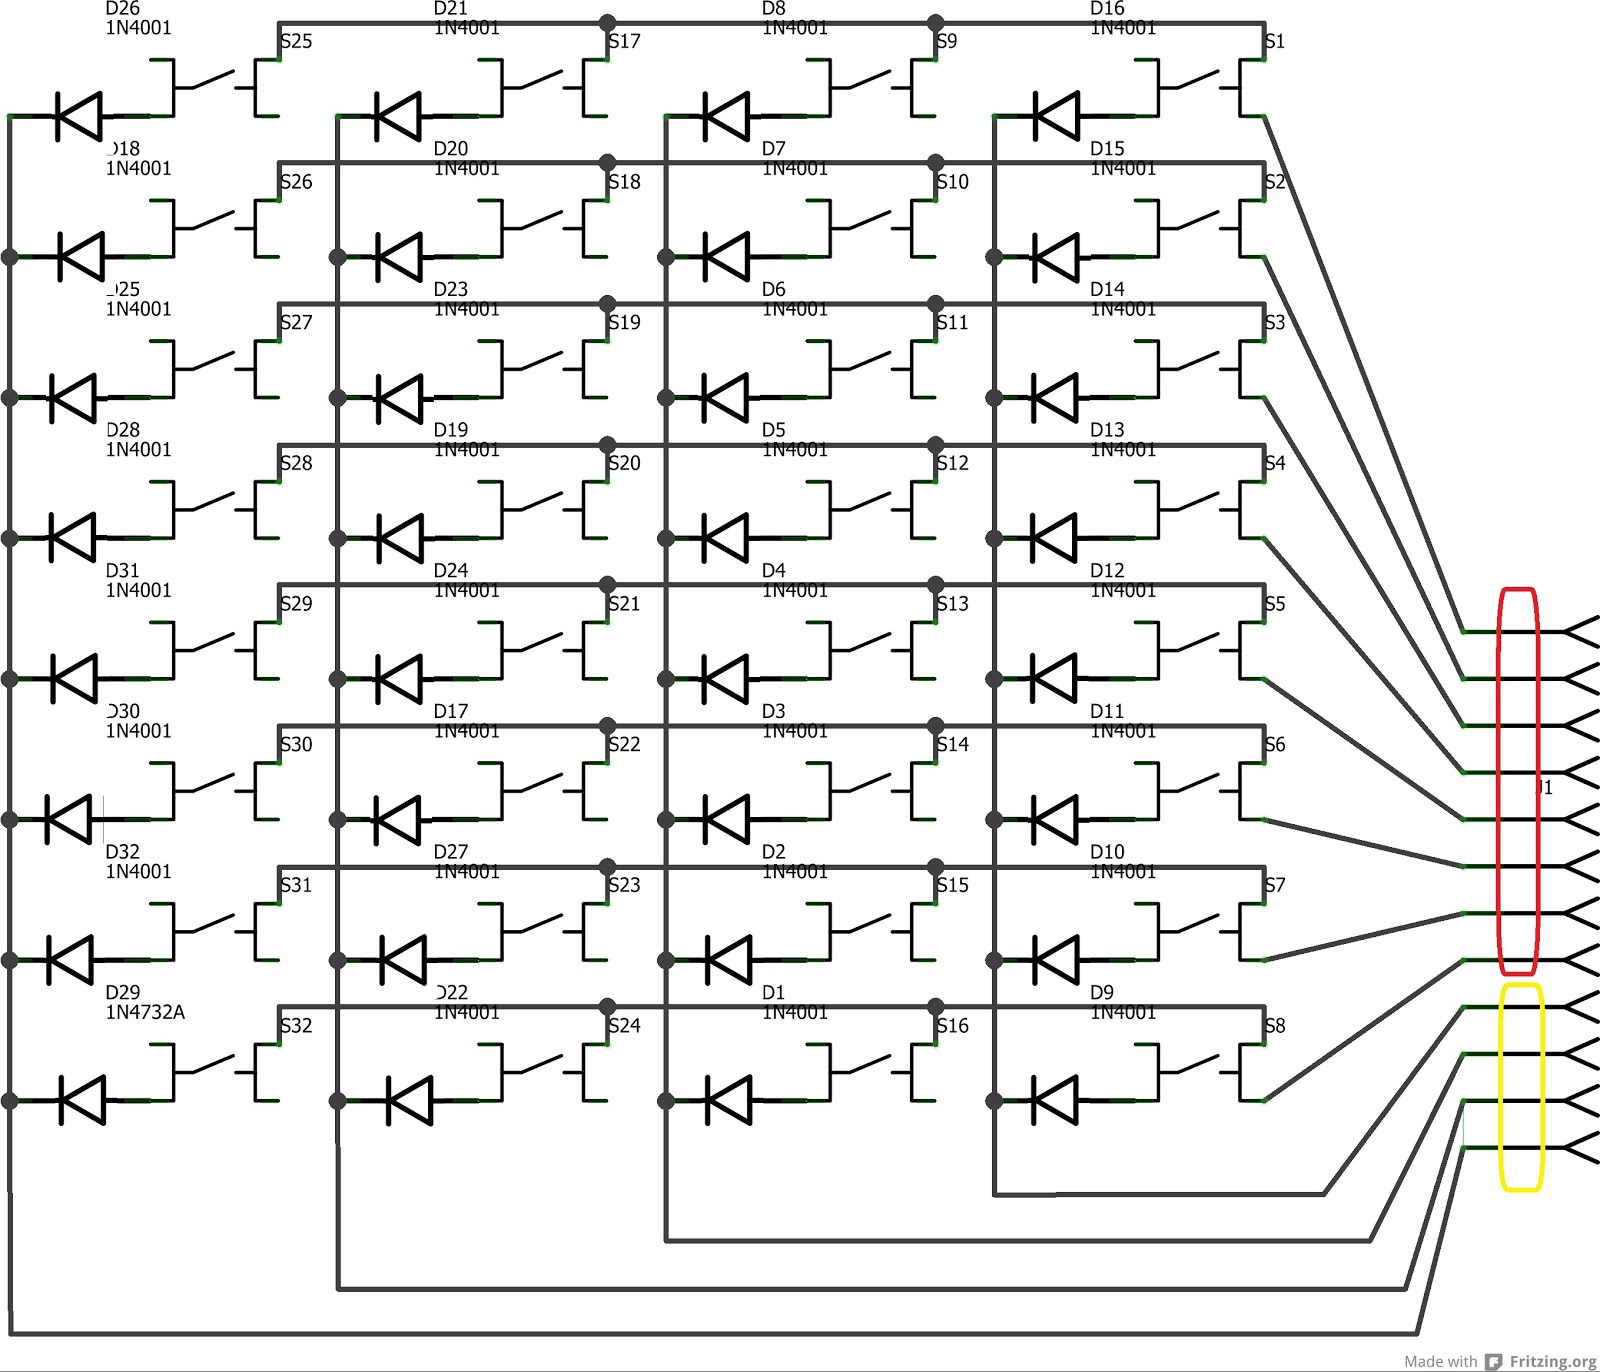 hight resolution of keys pcb schematic columns red and rows yellow